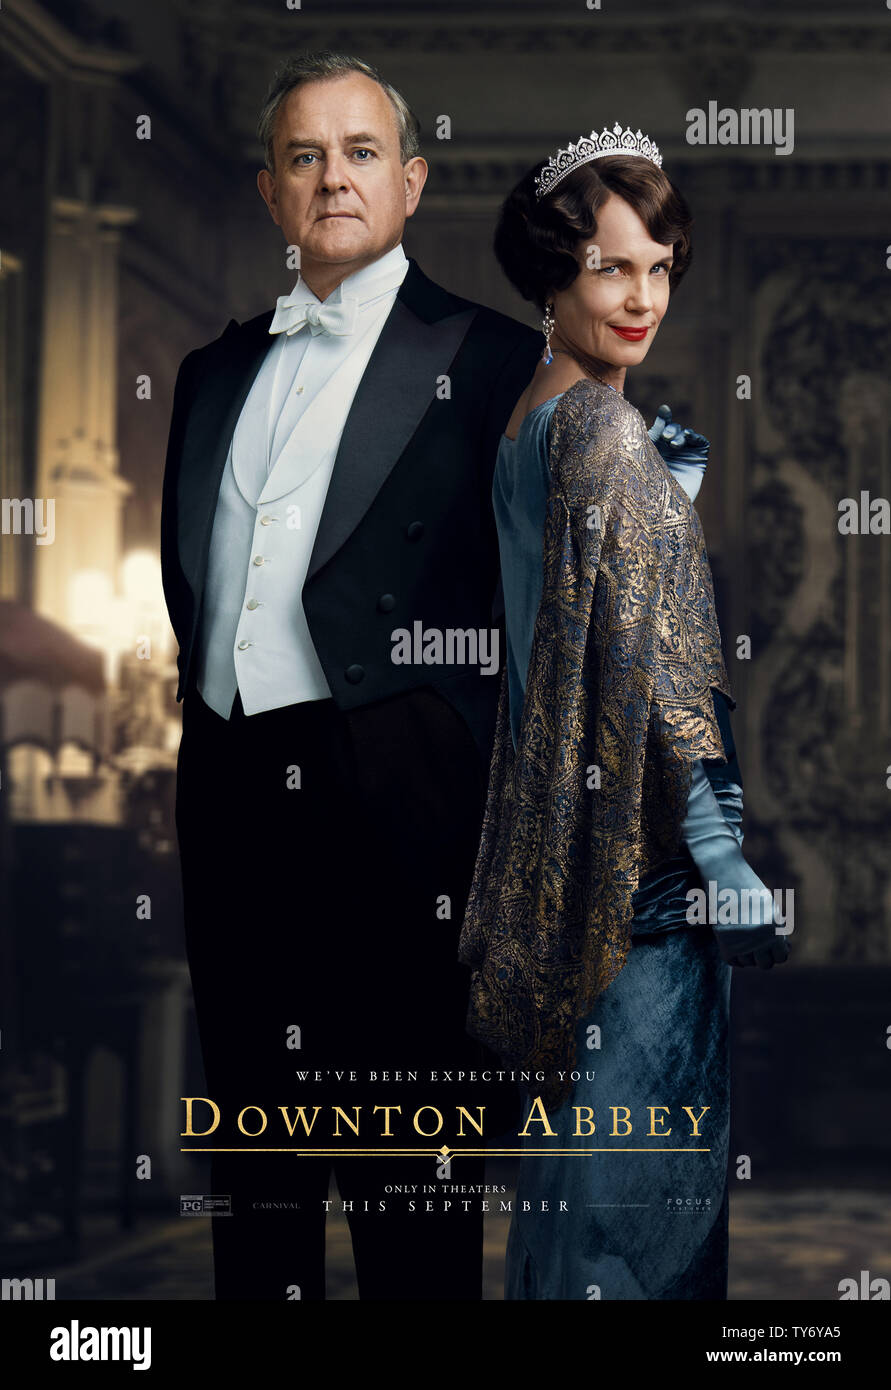 RELEASE DATE: September 20, 2019 TITLE: Downton Abbey STUDIO: Focus Features DIRECTOR: Michael Engler PLOT: Adapted from the hit TV series Downton Abbey that tells the story of the Crawley family, a wealthy owner of a large estate in the English countryside in the early 20th century. STARRING: HUGH BONNEVILLE as Robert Crawley, ELIZABETH MCGOVERN as Cora Crawley. (Credit Image: © Focus Features/Entertainment Pictures) - Stock Image